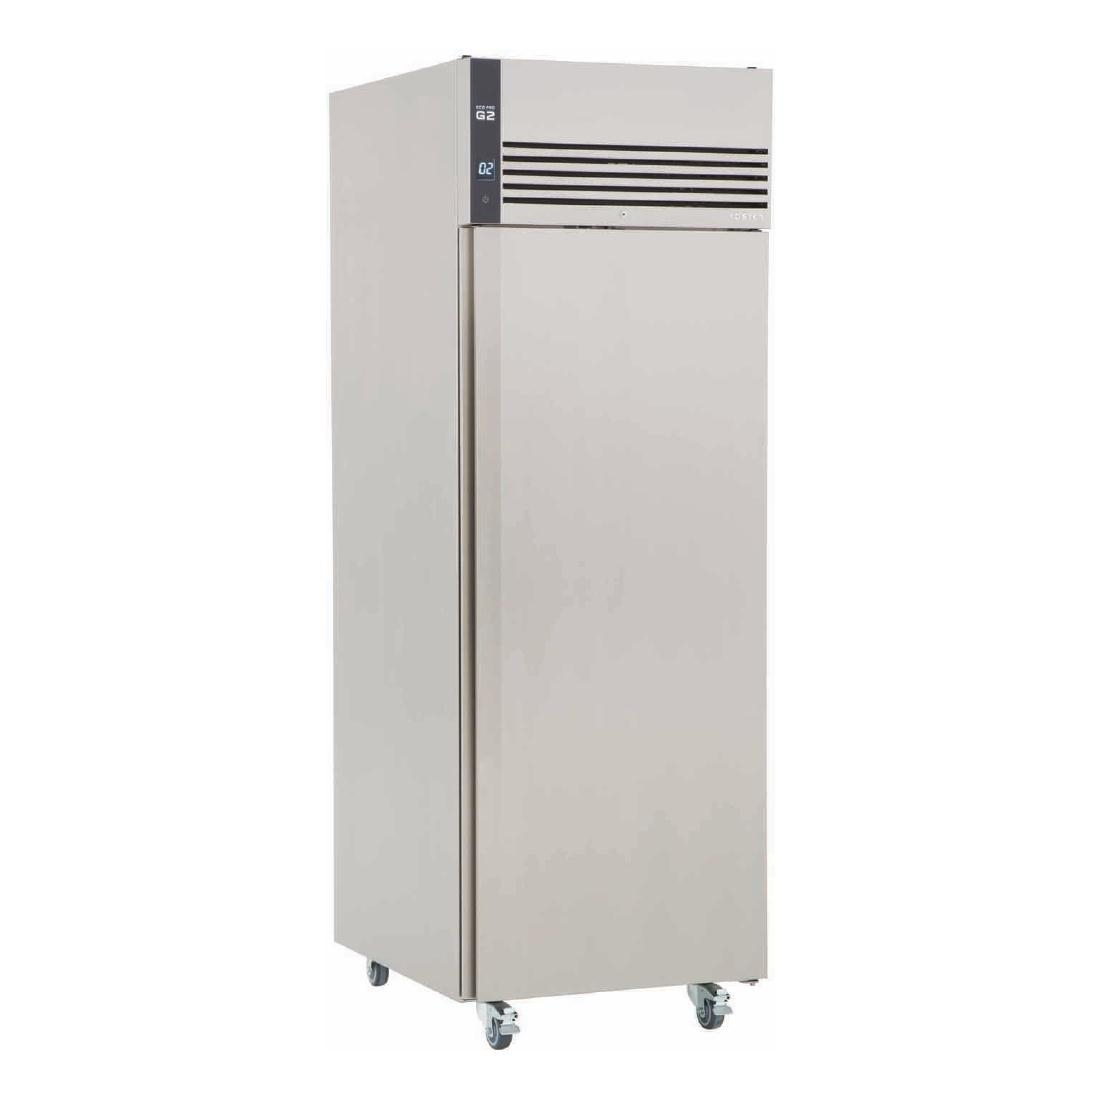 Foster EcoPro G2 1 Door 600Ltr Cabinet Fridge with Back EP700H 10/116